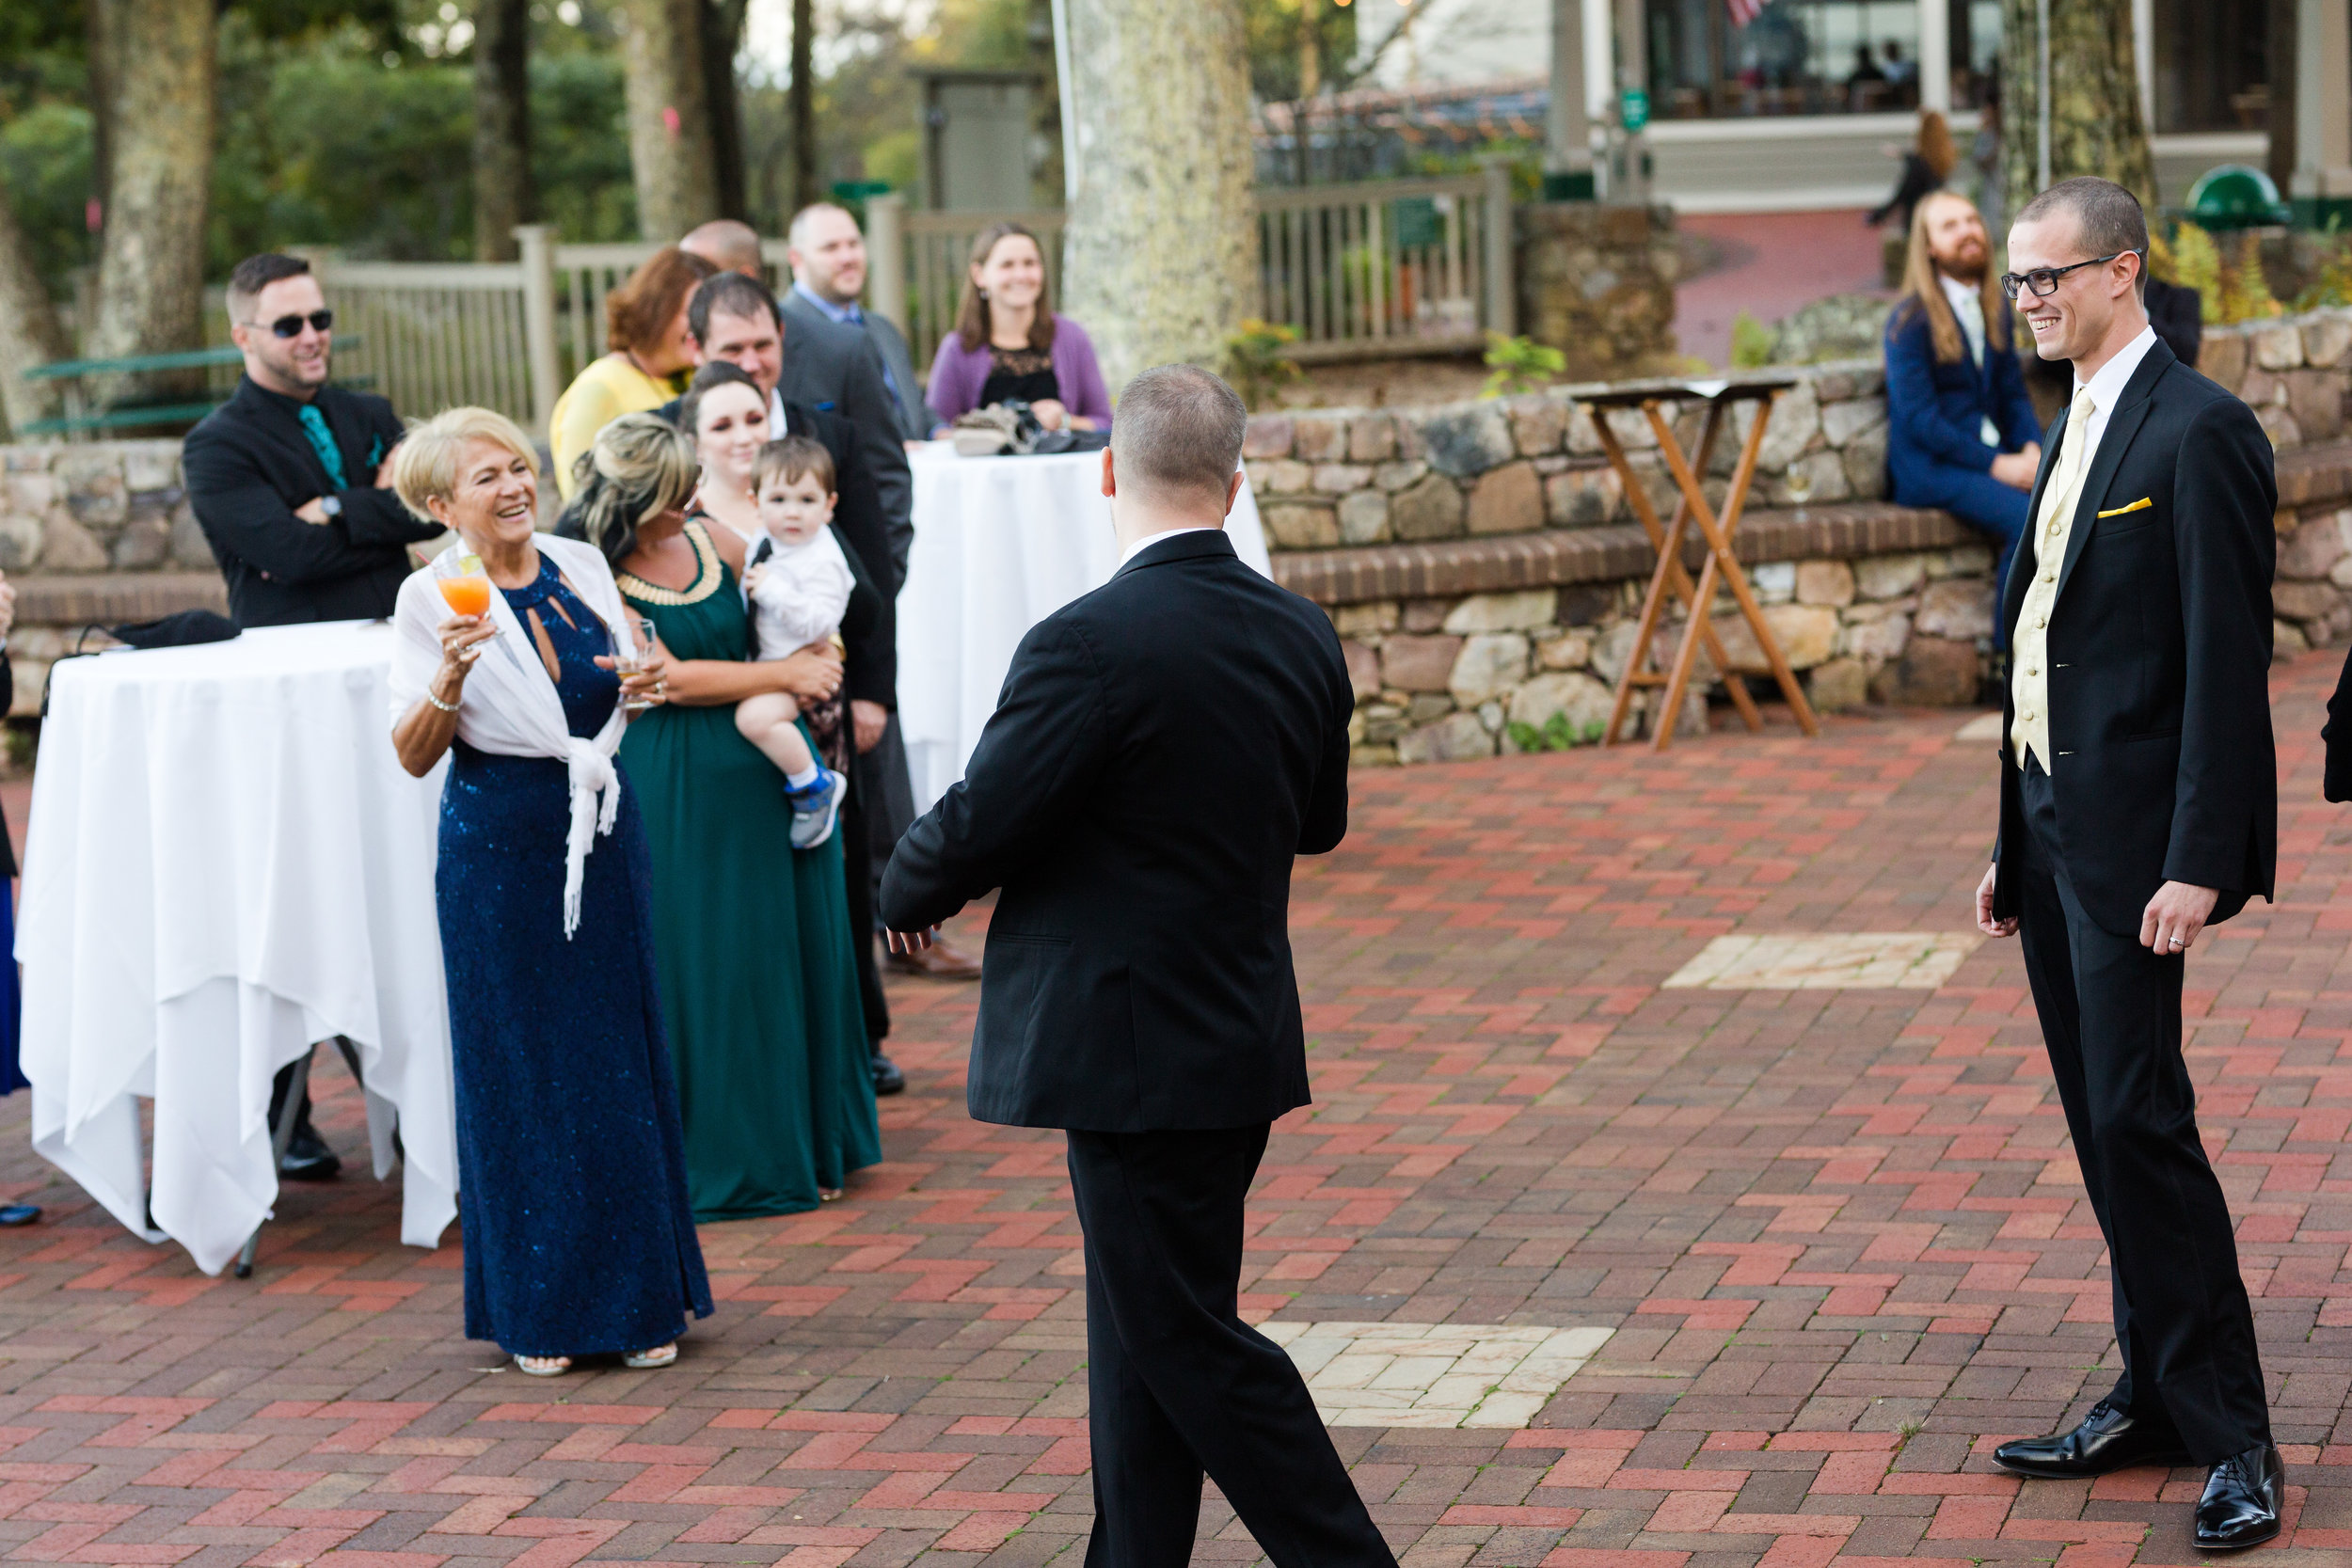 Wintergreen wedding ben brandon-101.jpg